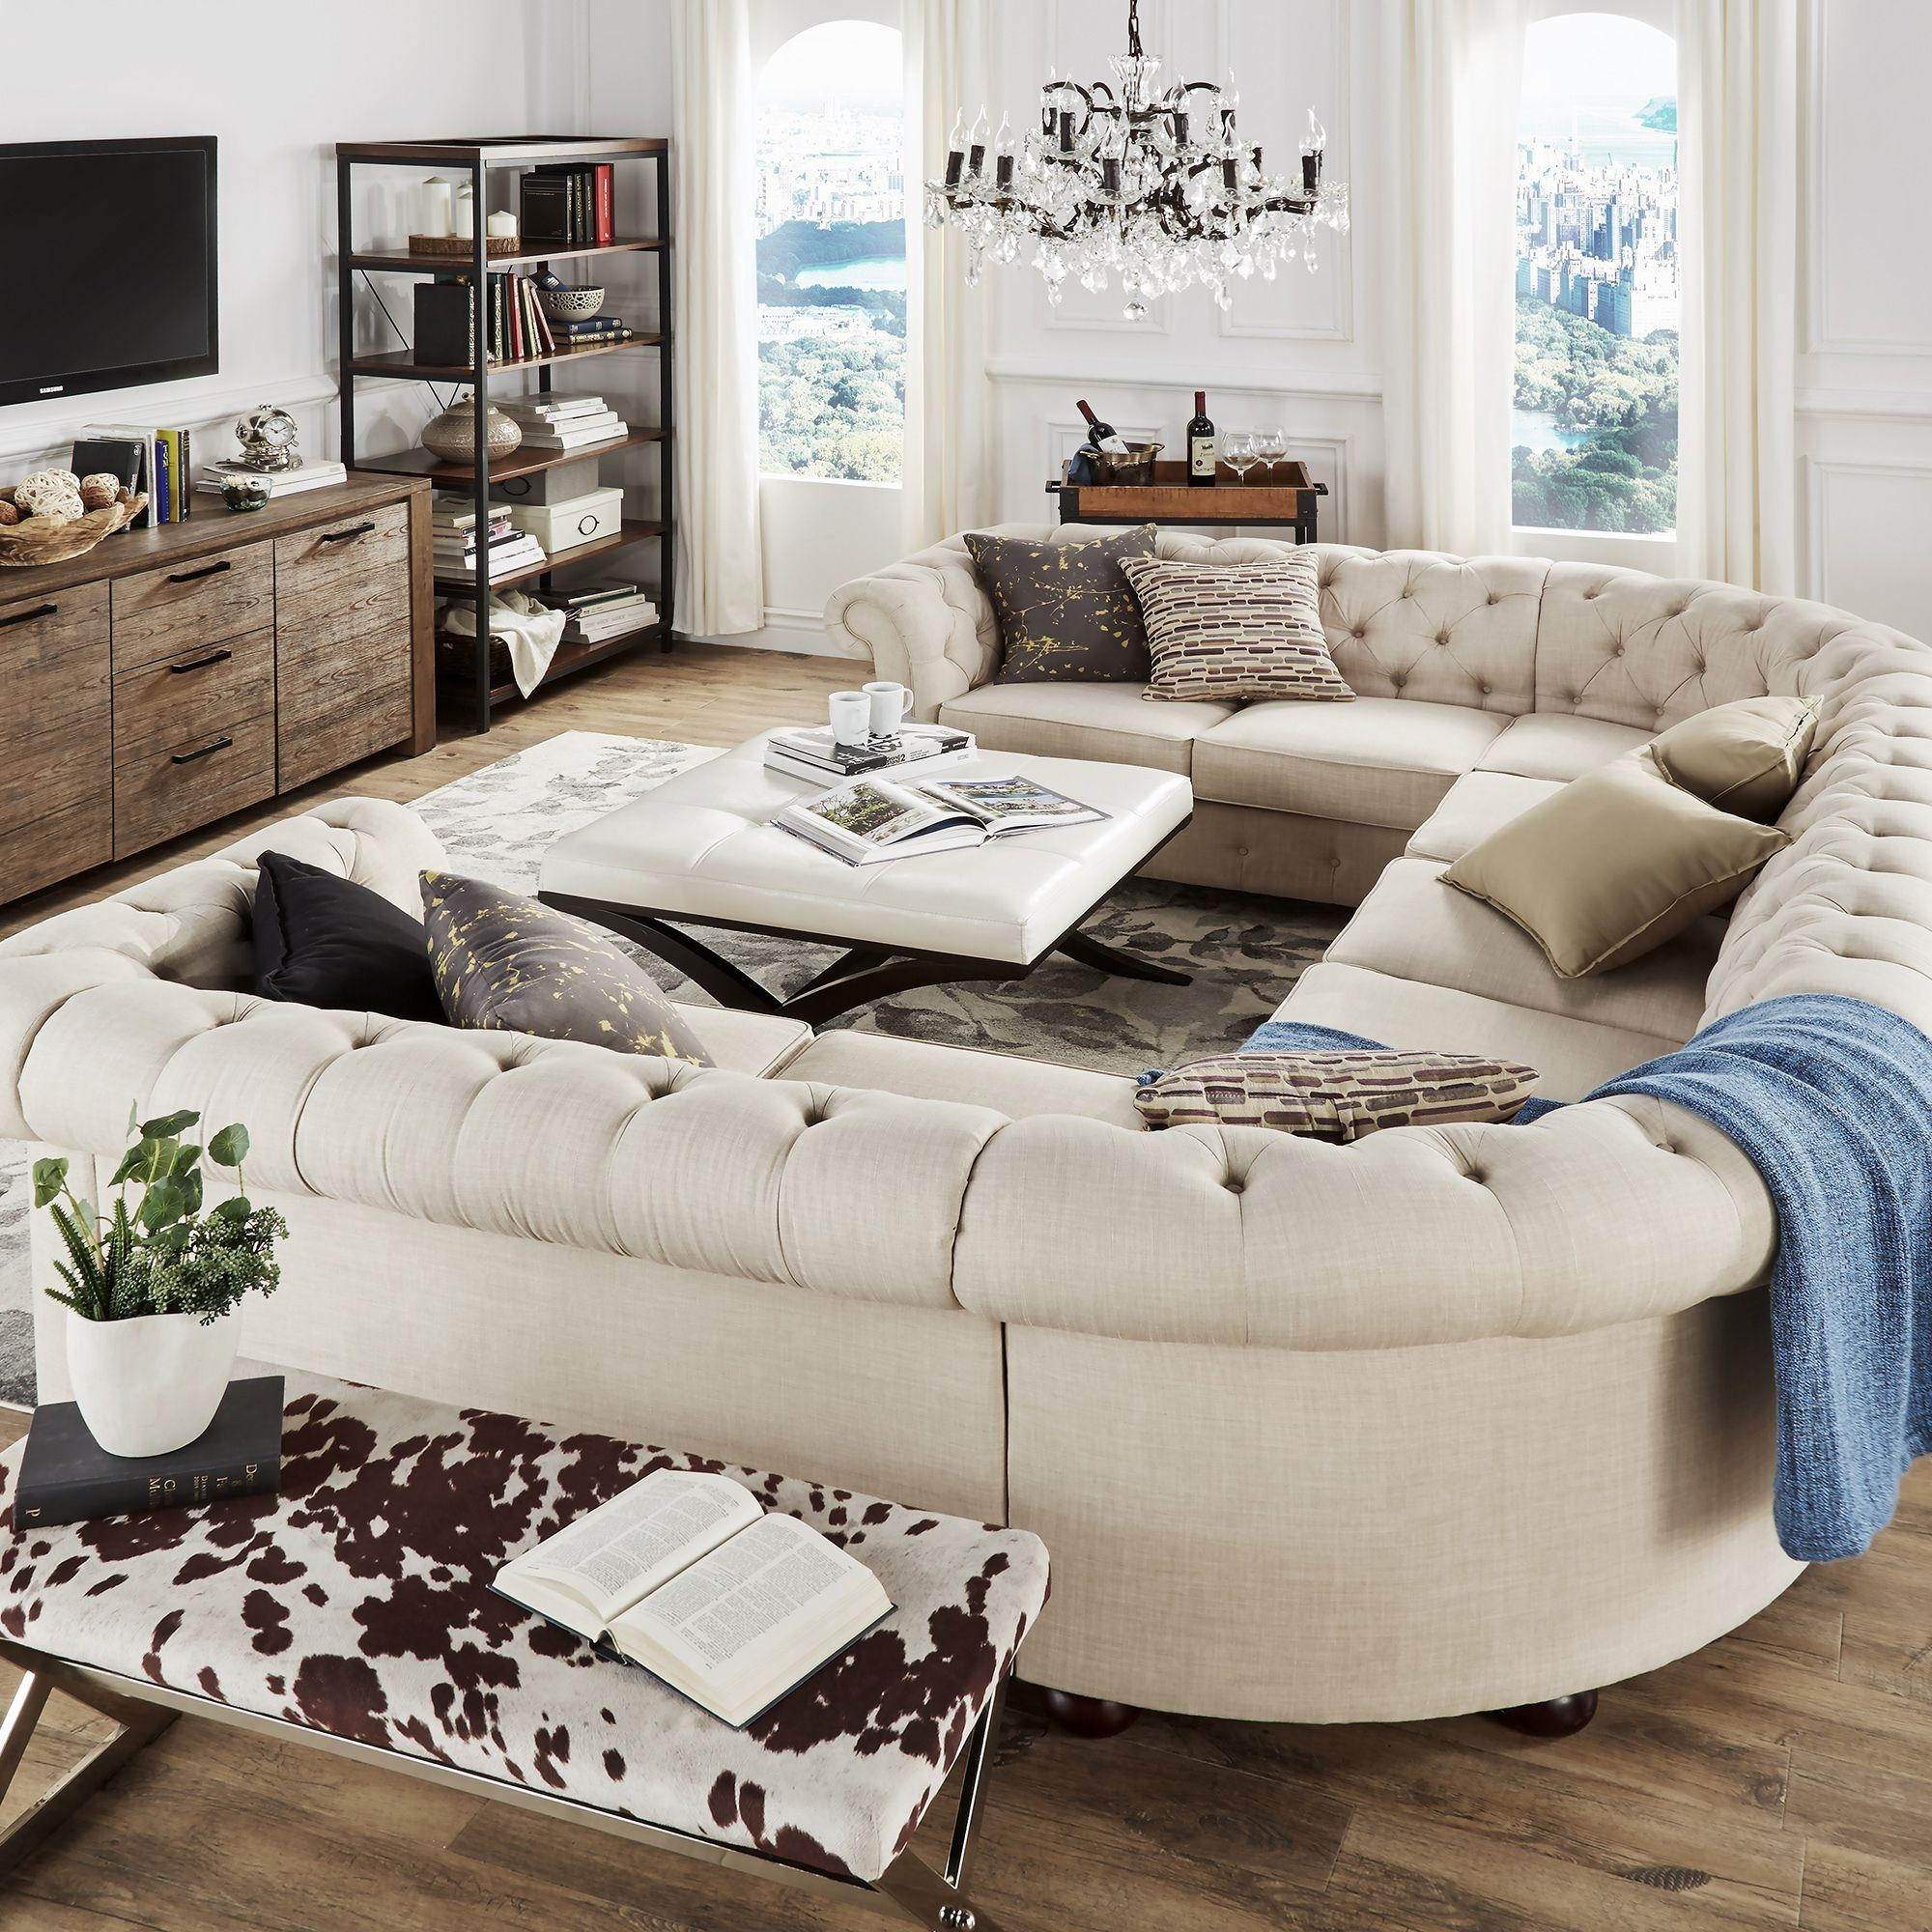 Lovesac Sofa For Sale: 20 Collection Of Love Sac Sofas